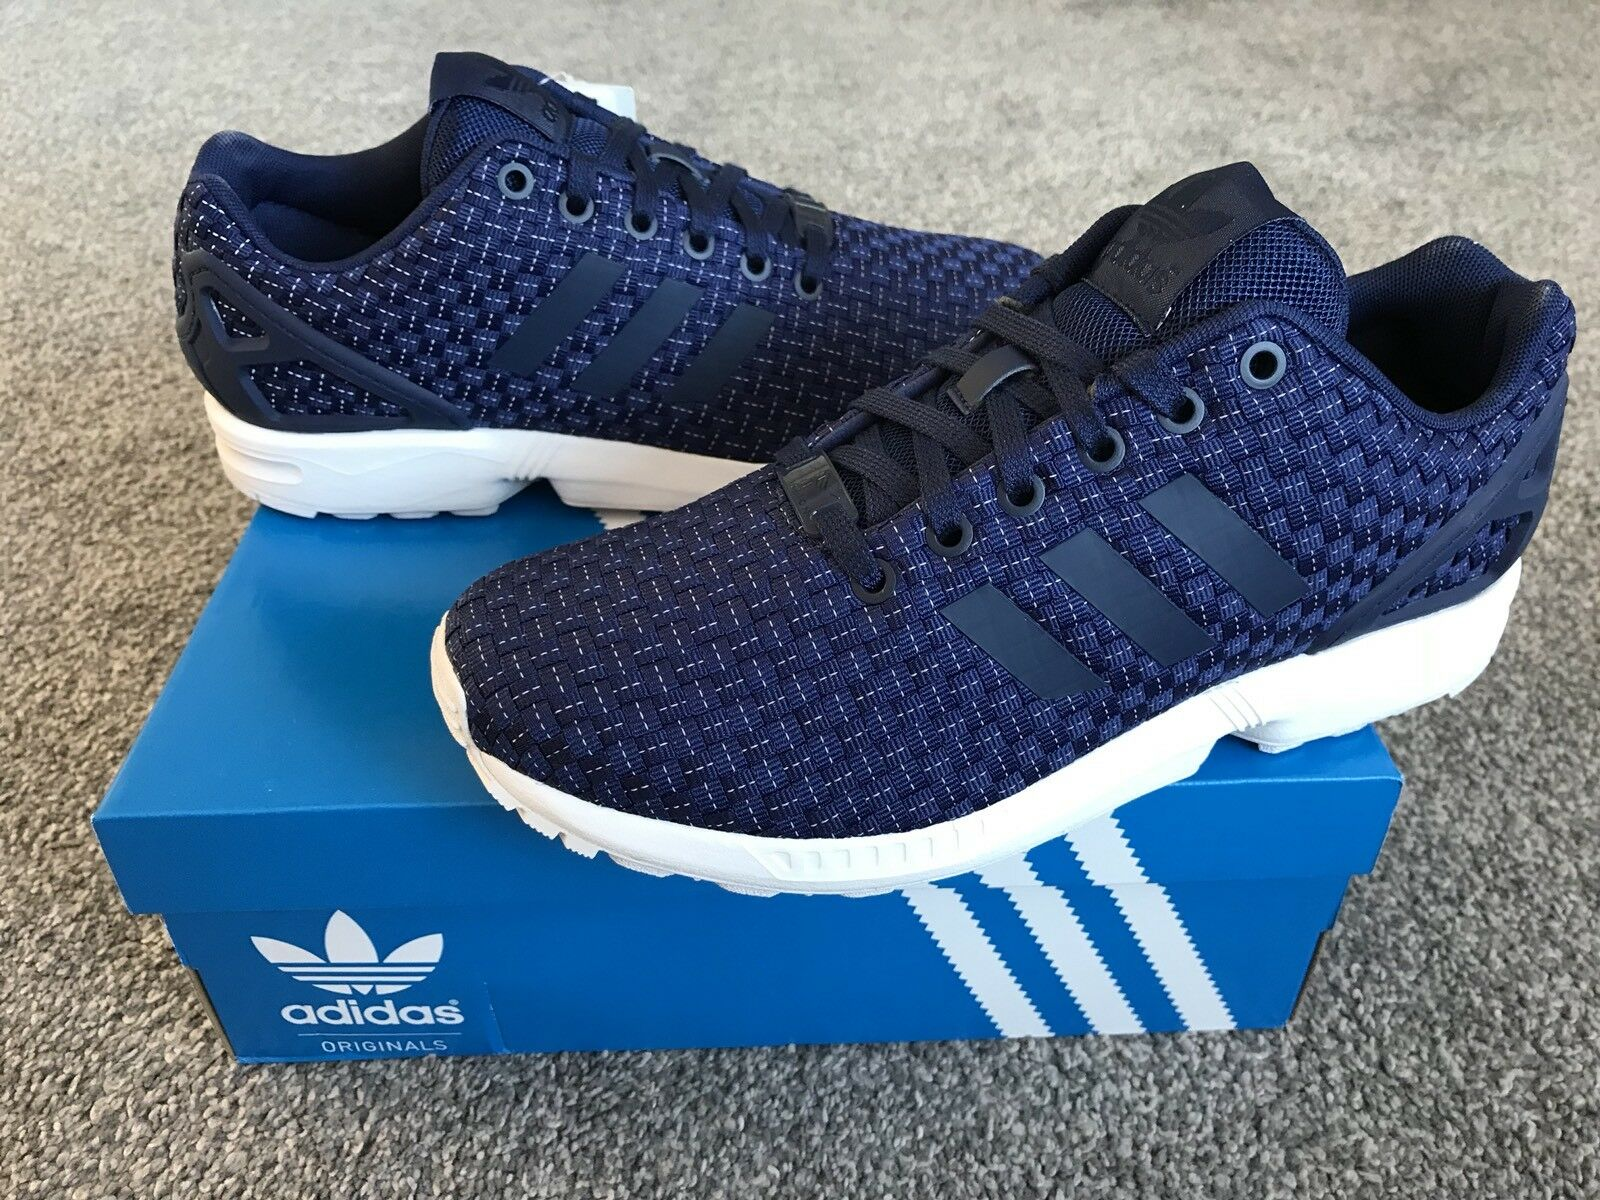 ADIDAS ZX Flux Woven Mens Trainers, Deep Blue - Comfortable Seasonal clearance sale